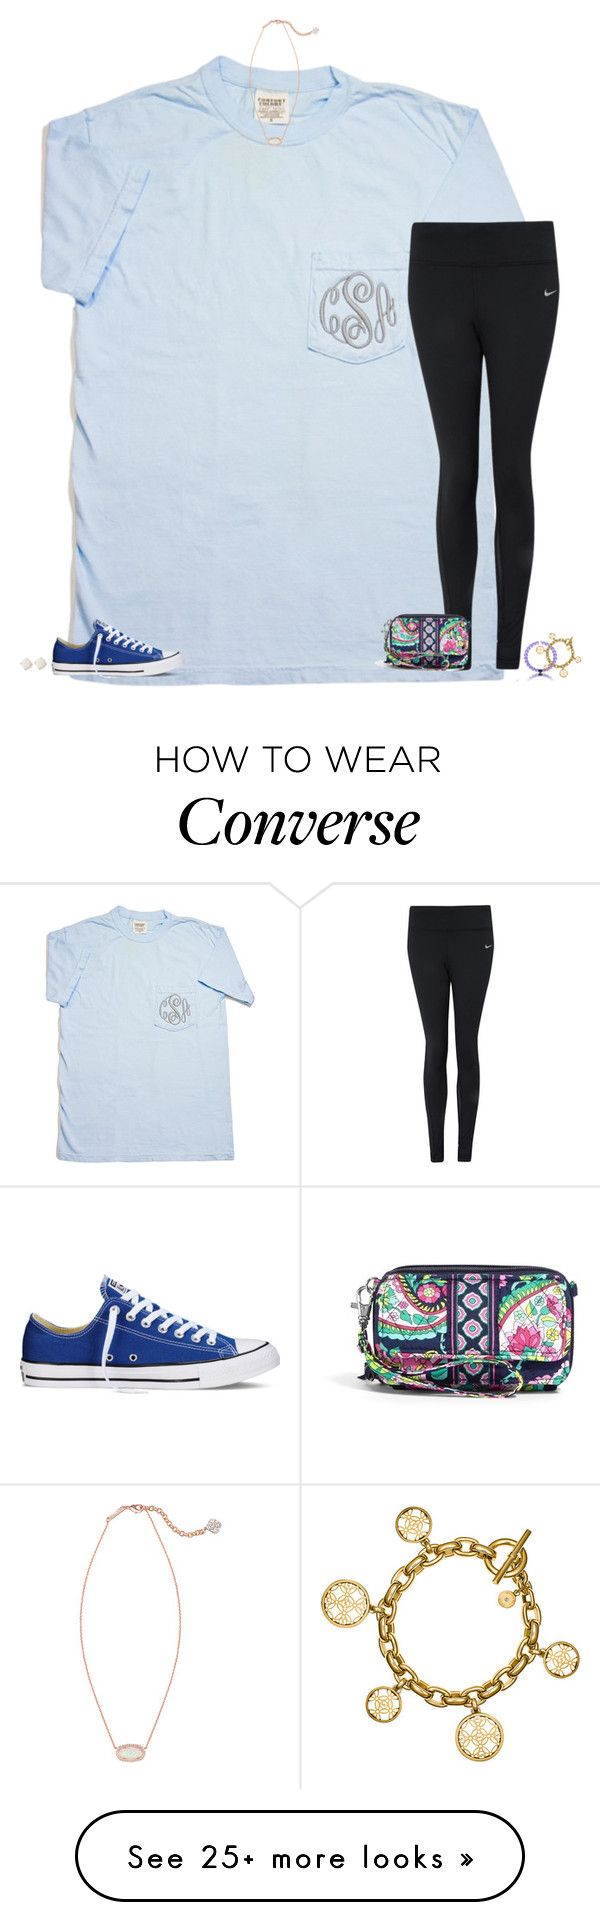 """be somebody who makes everybody feel like a somebody"" by secfashion13 on Polyvore featuring Converse, Kendra Scott, NIKE, Vera Bradley, Kate Spade, Michael Kors, women's clothing, women, female and woman"